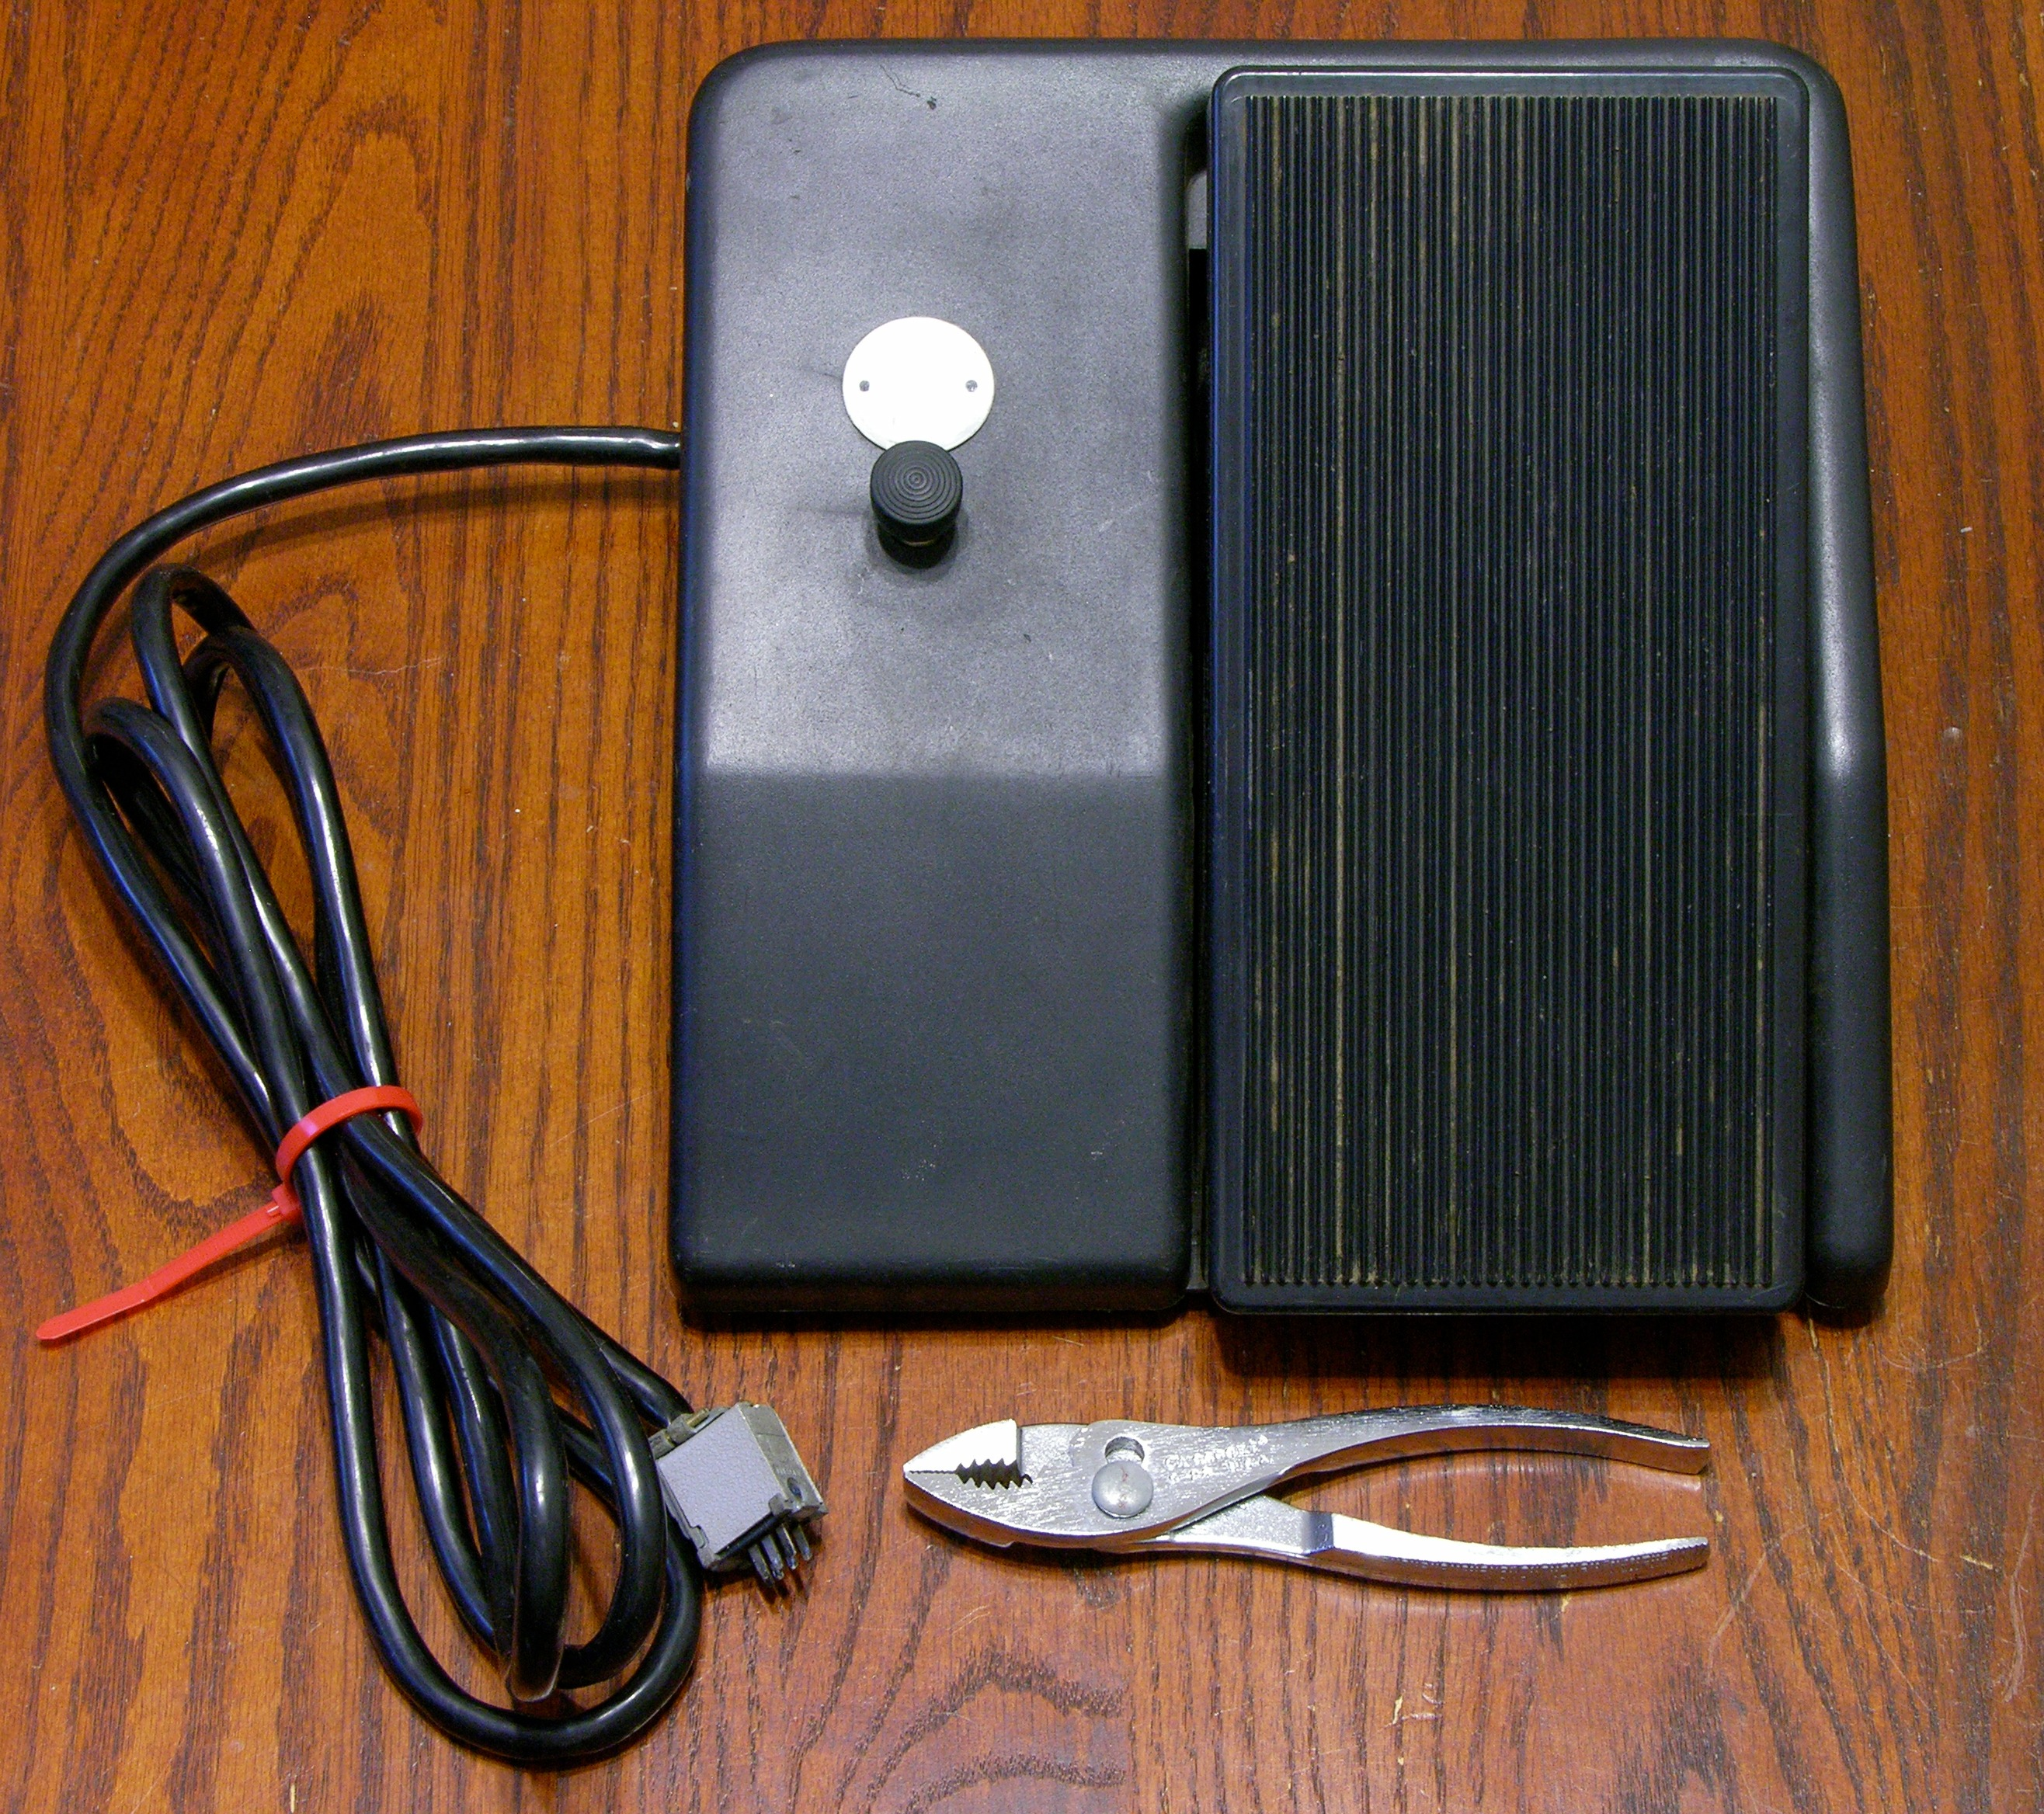 Buying And Assessing A Crumar T2 Organ Keiths Electronics Blog Keyboard Sustain Pedal Wiring Diagram Swell